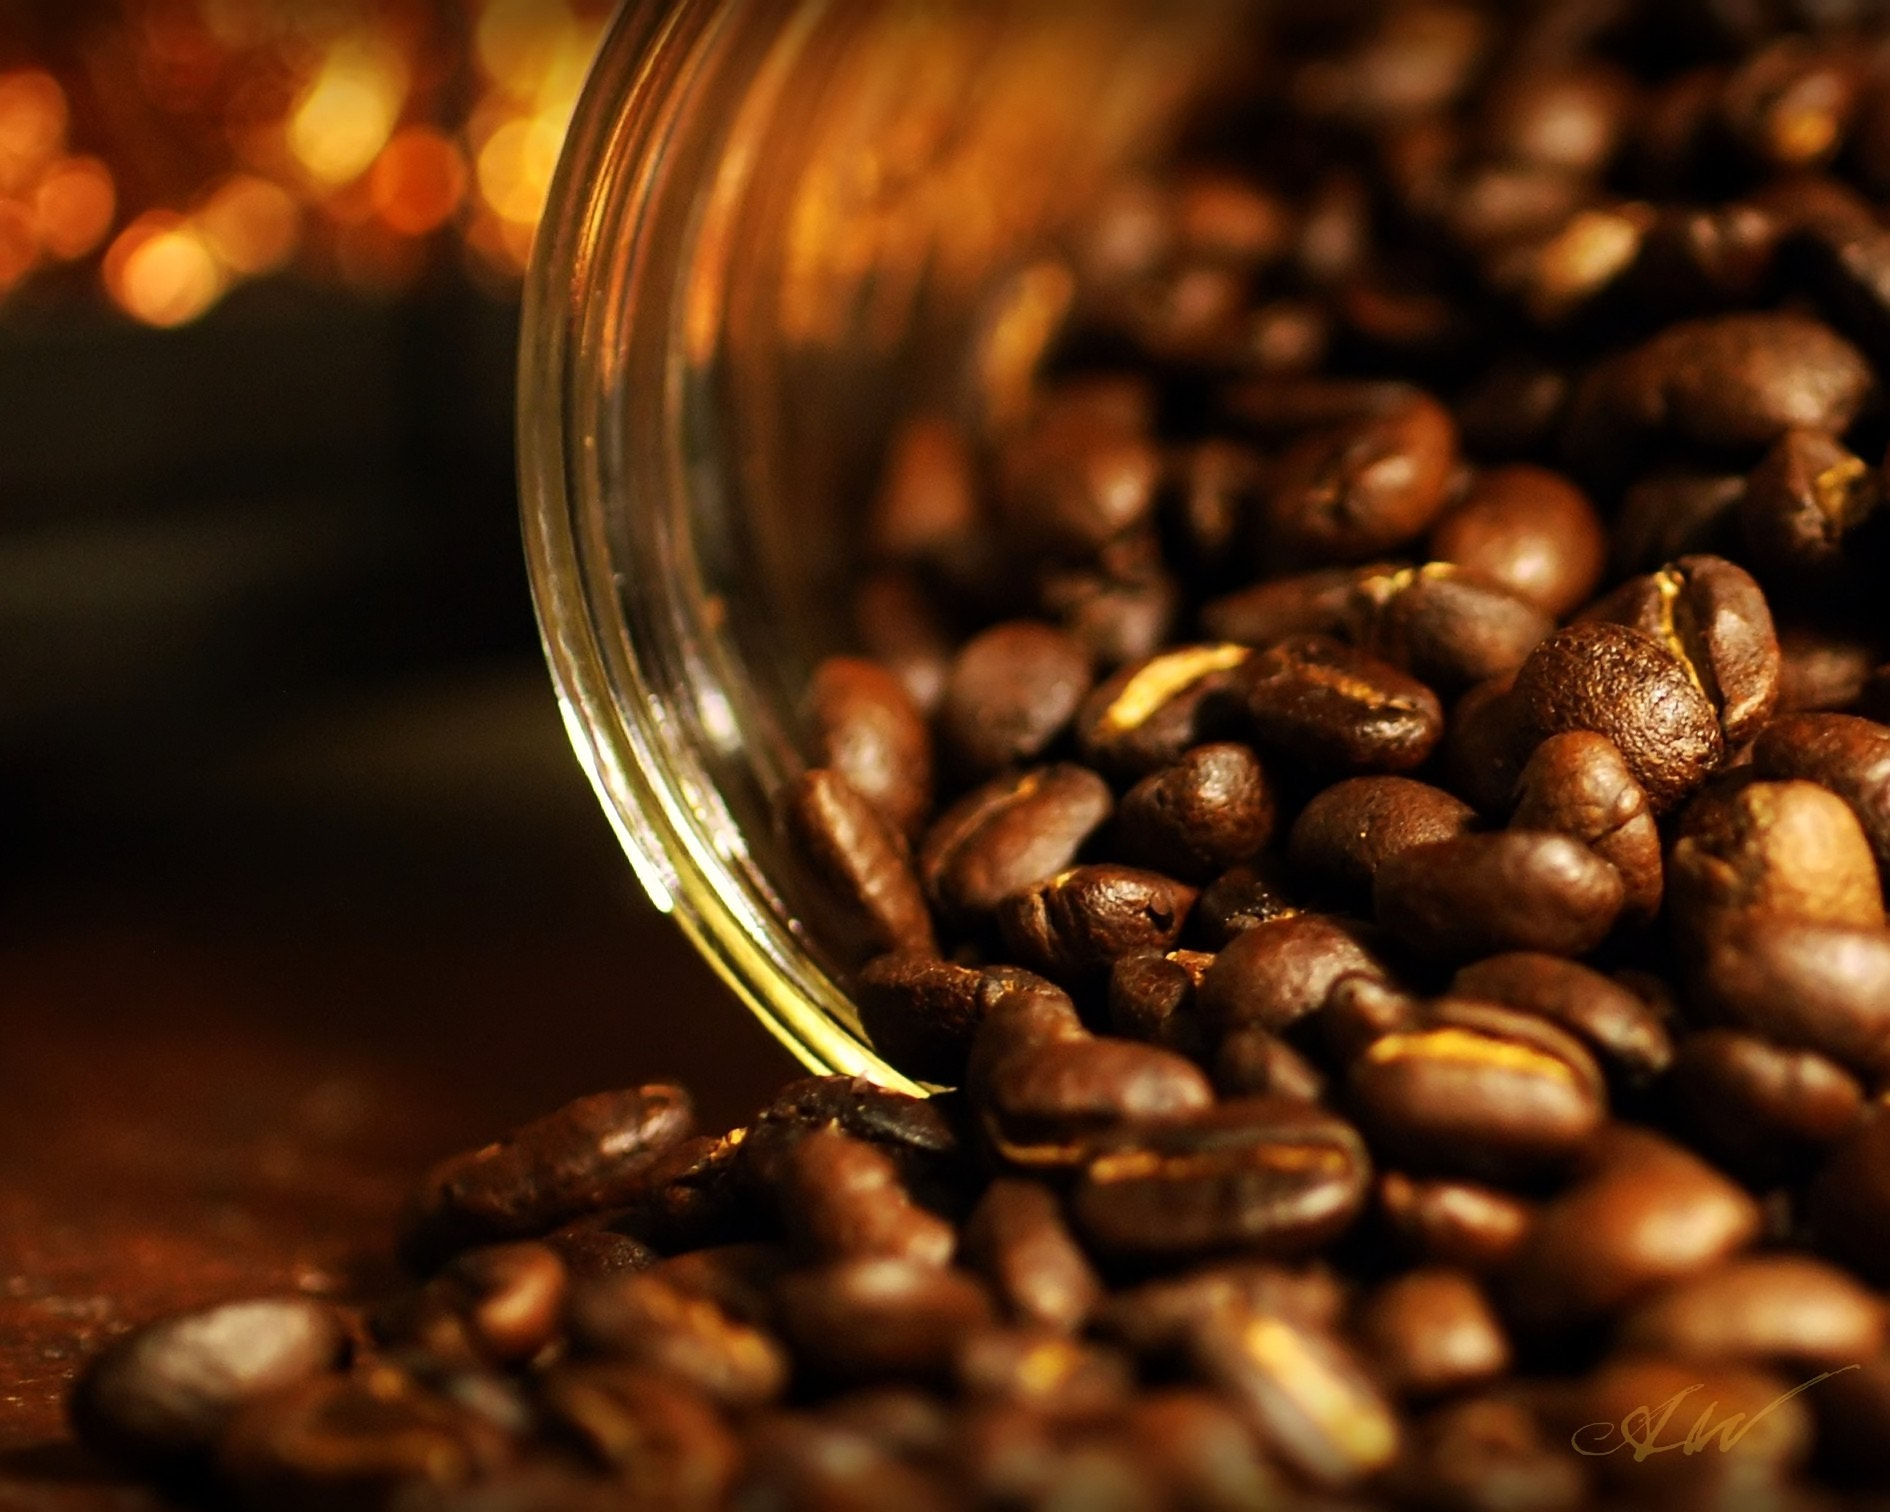 Photograph coffee beans by Watty Watts on 500px